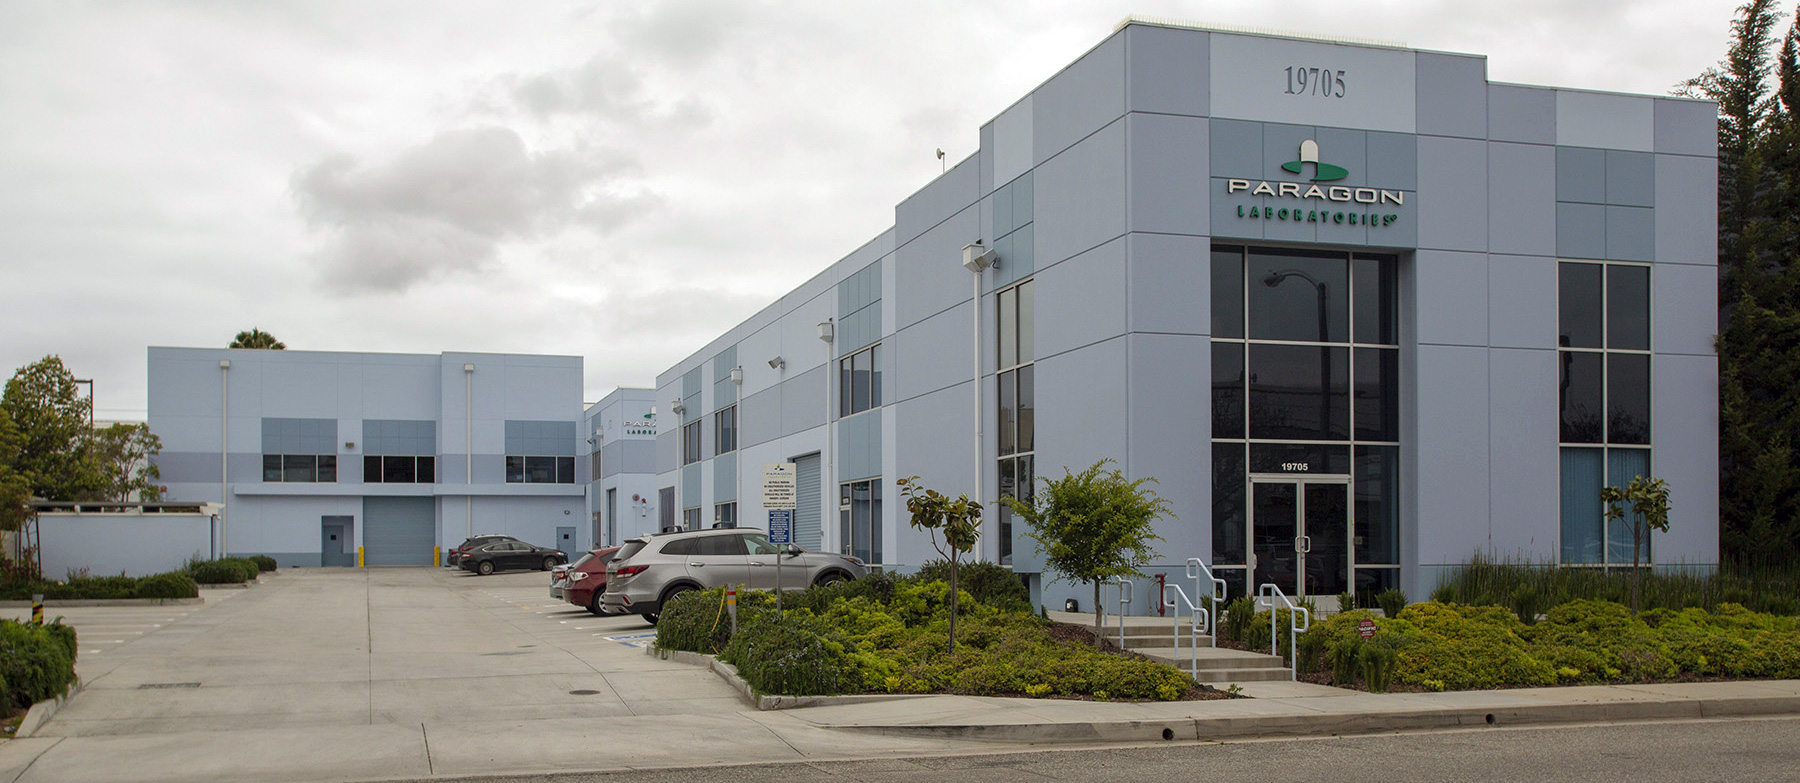 Paragon Laboratories Facility